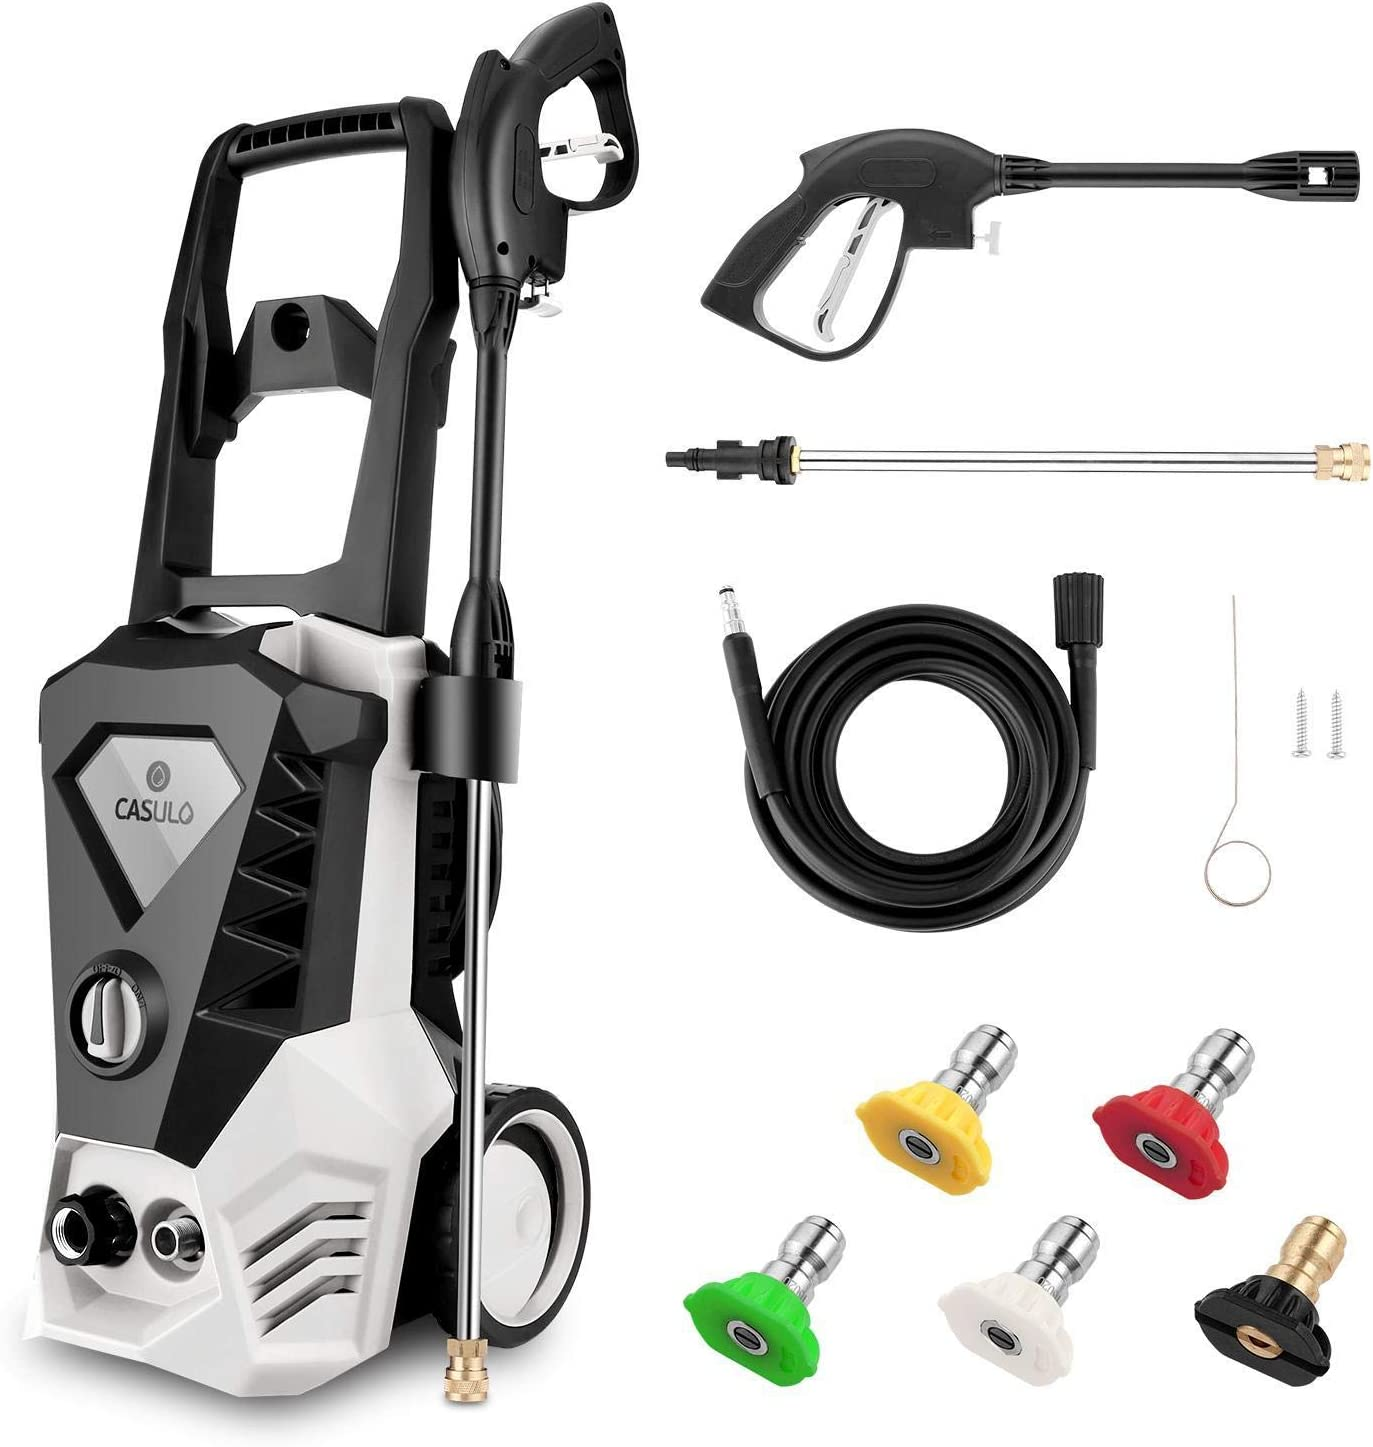 Wesoky Electric Pressure Washer Max 3500PSI 2.6GPM, 1800W Power Washer Machine